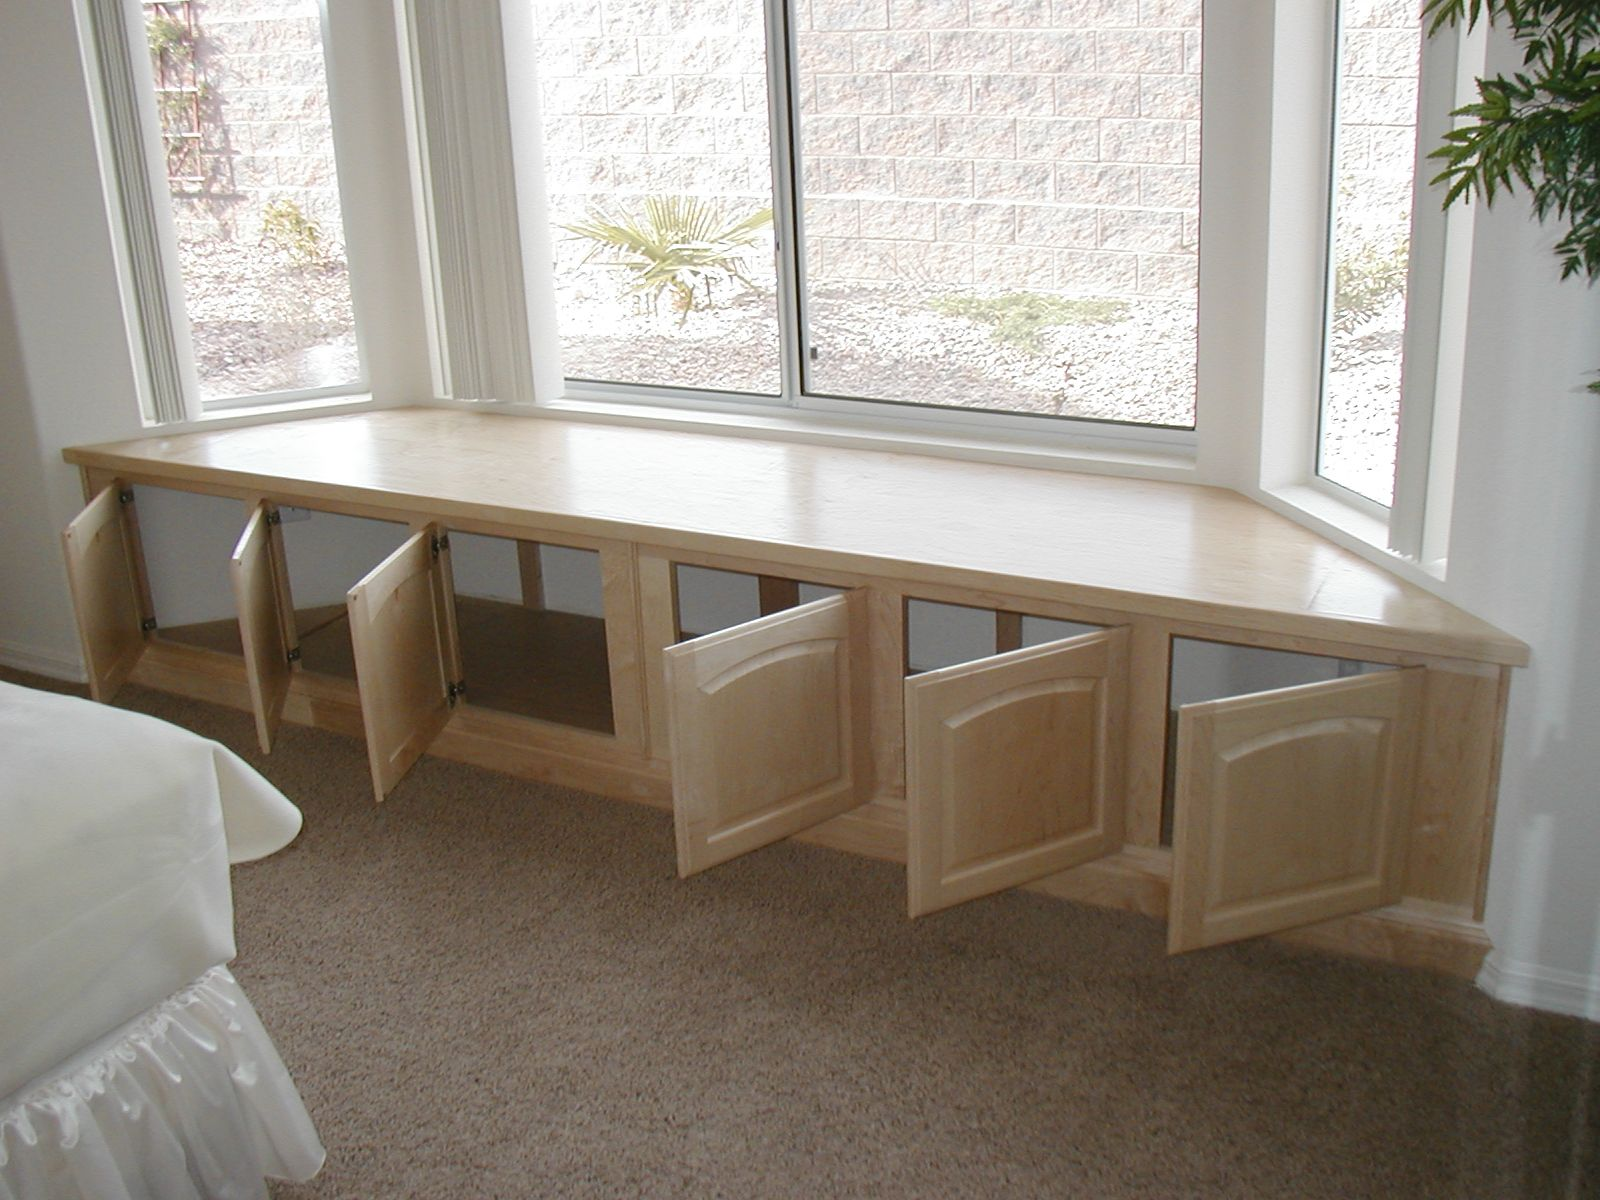 Under Desk Storage Cabinet Bay Window Design Creativity Window Benches Bay Window Benches